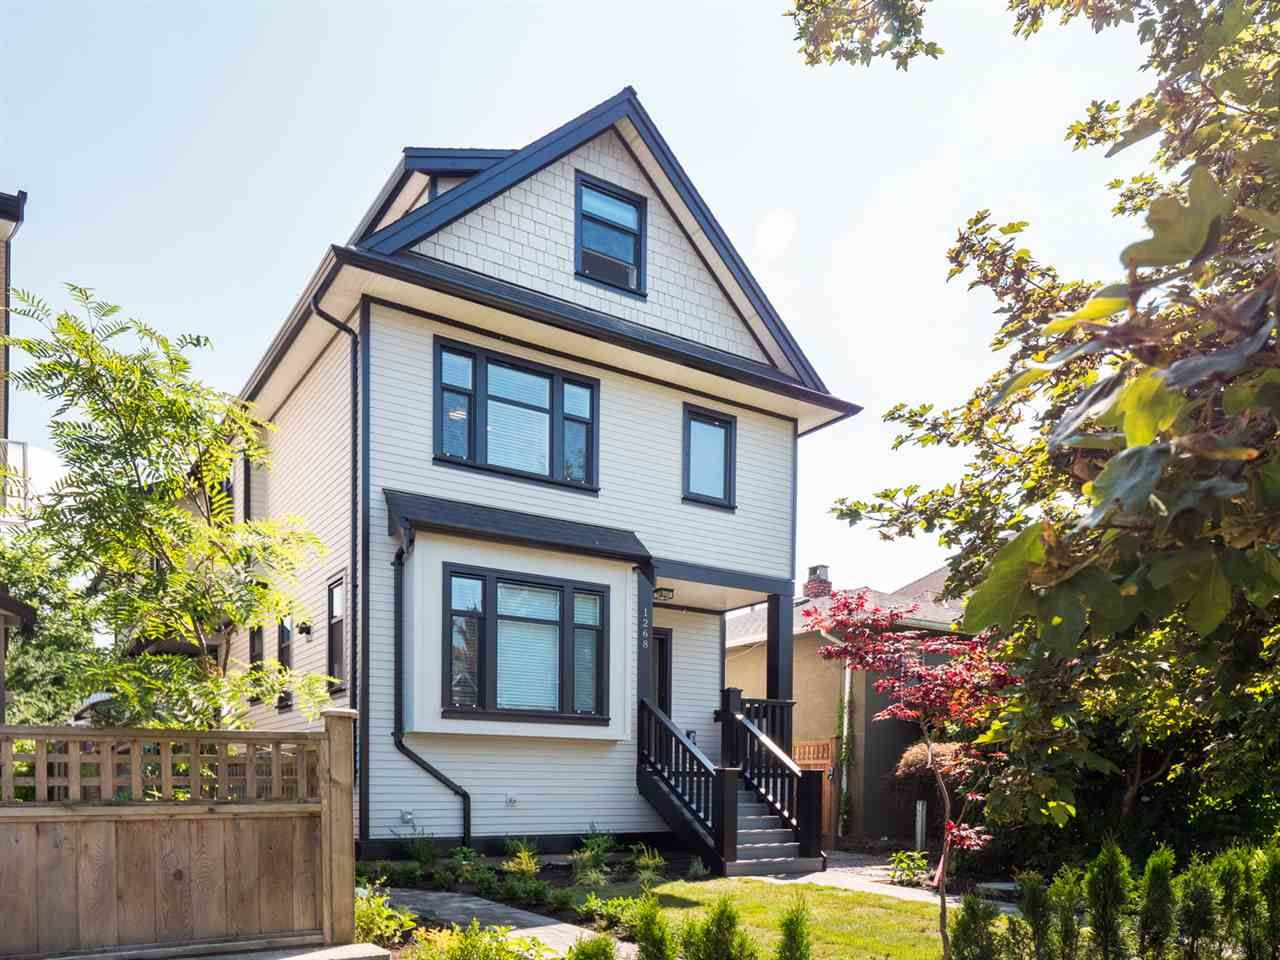 Main Photo: 1270 E 16TH Avenue in Vancouver: Knight 1/2 Duplex for sale (Vancouver East)  : MLS®# R2387143